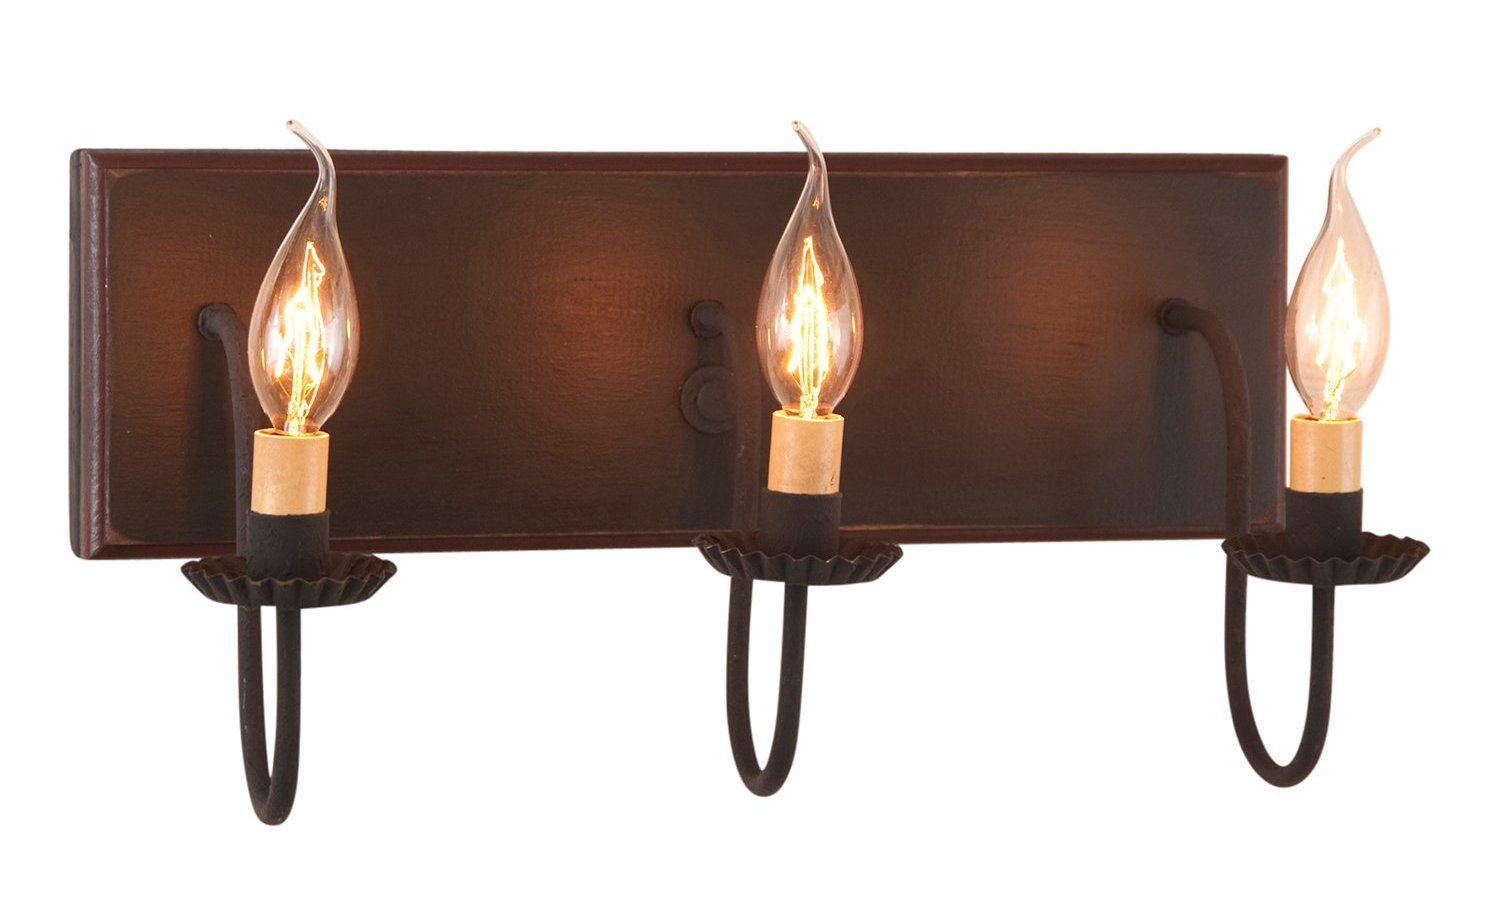 3-Arm County Vanity Light Bar - Allysons Place